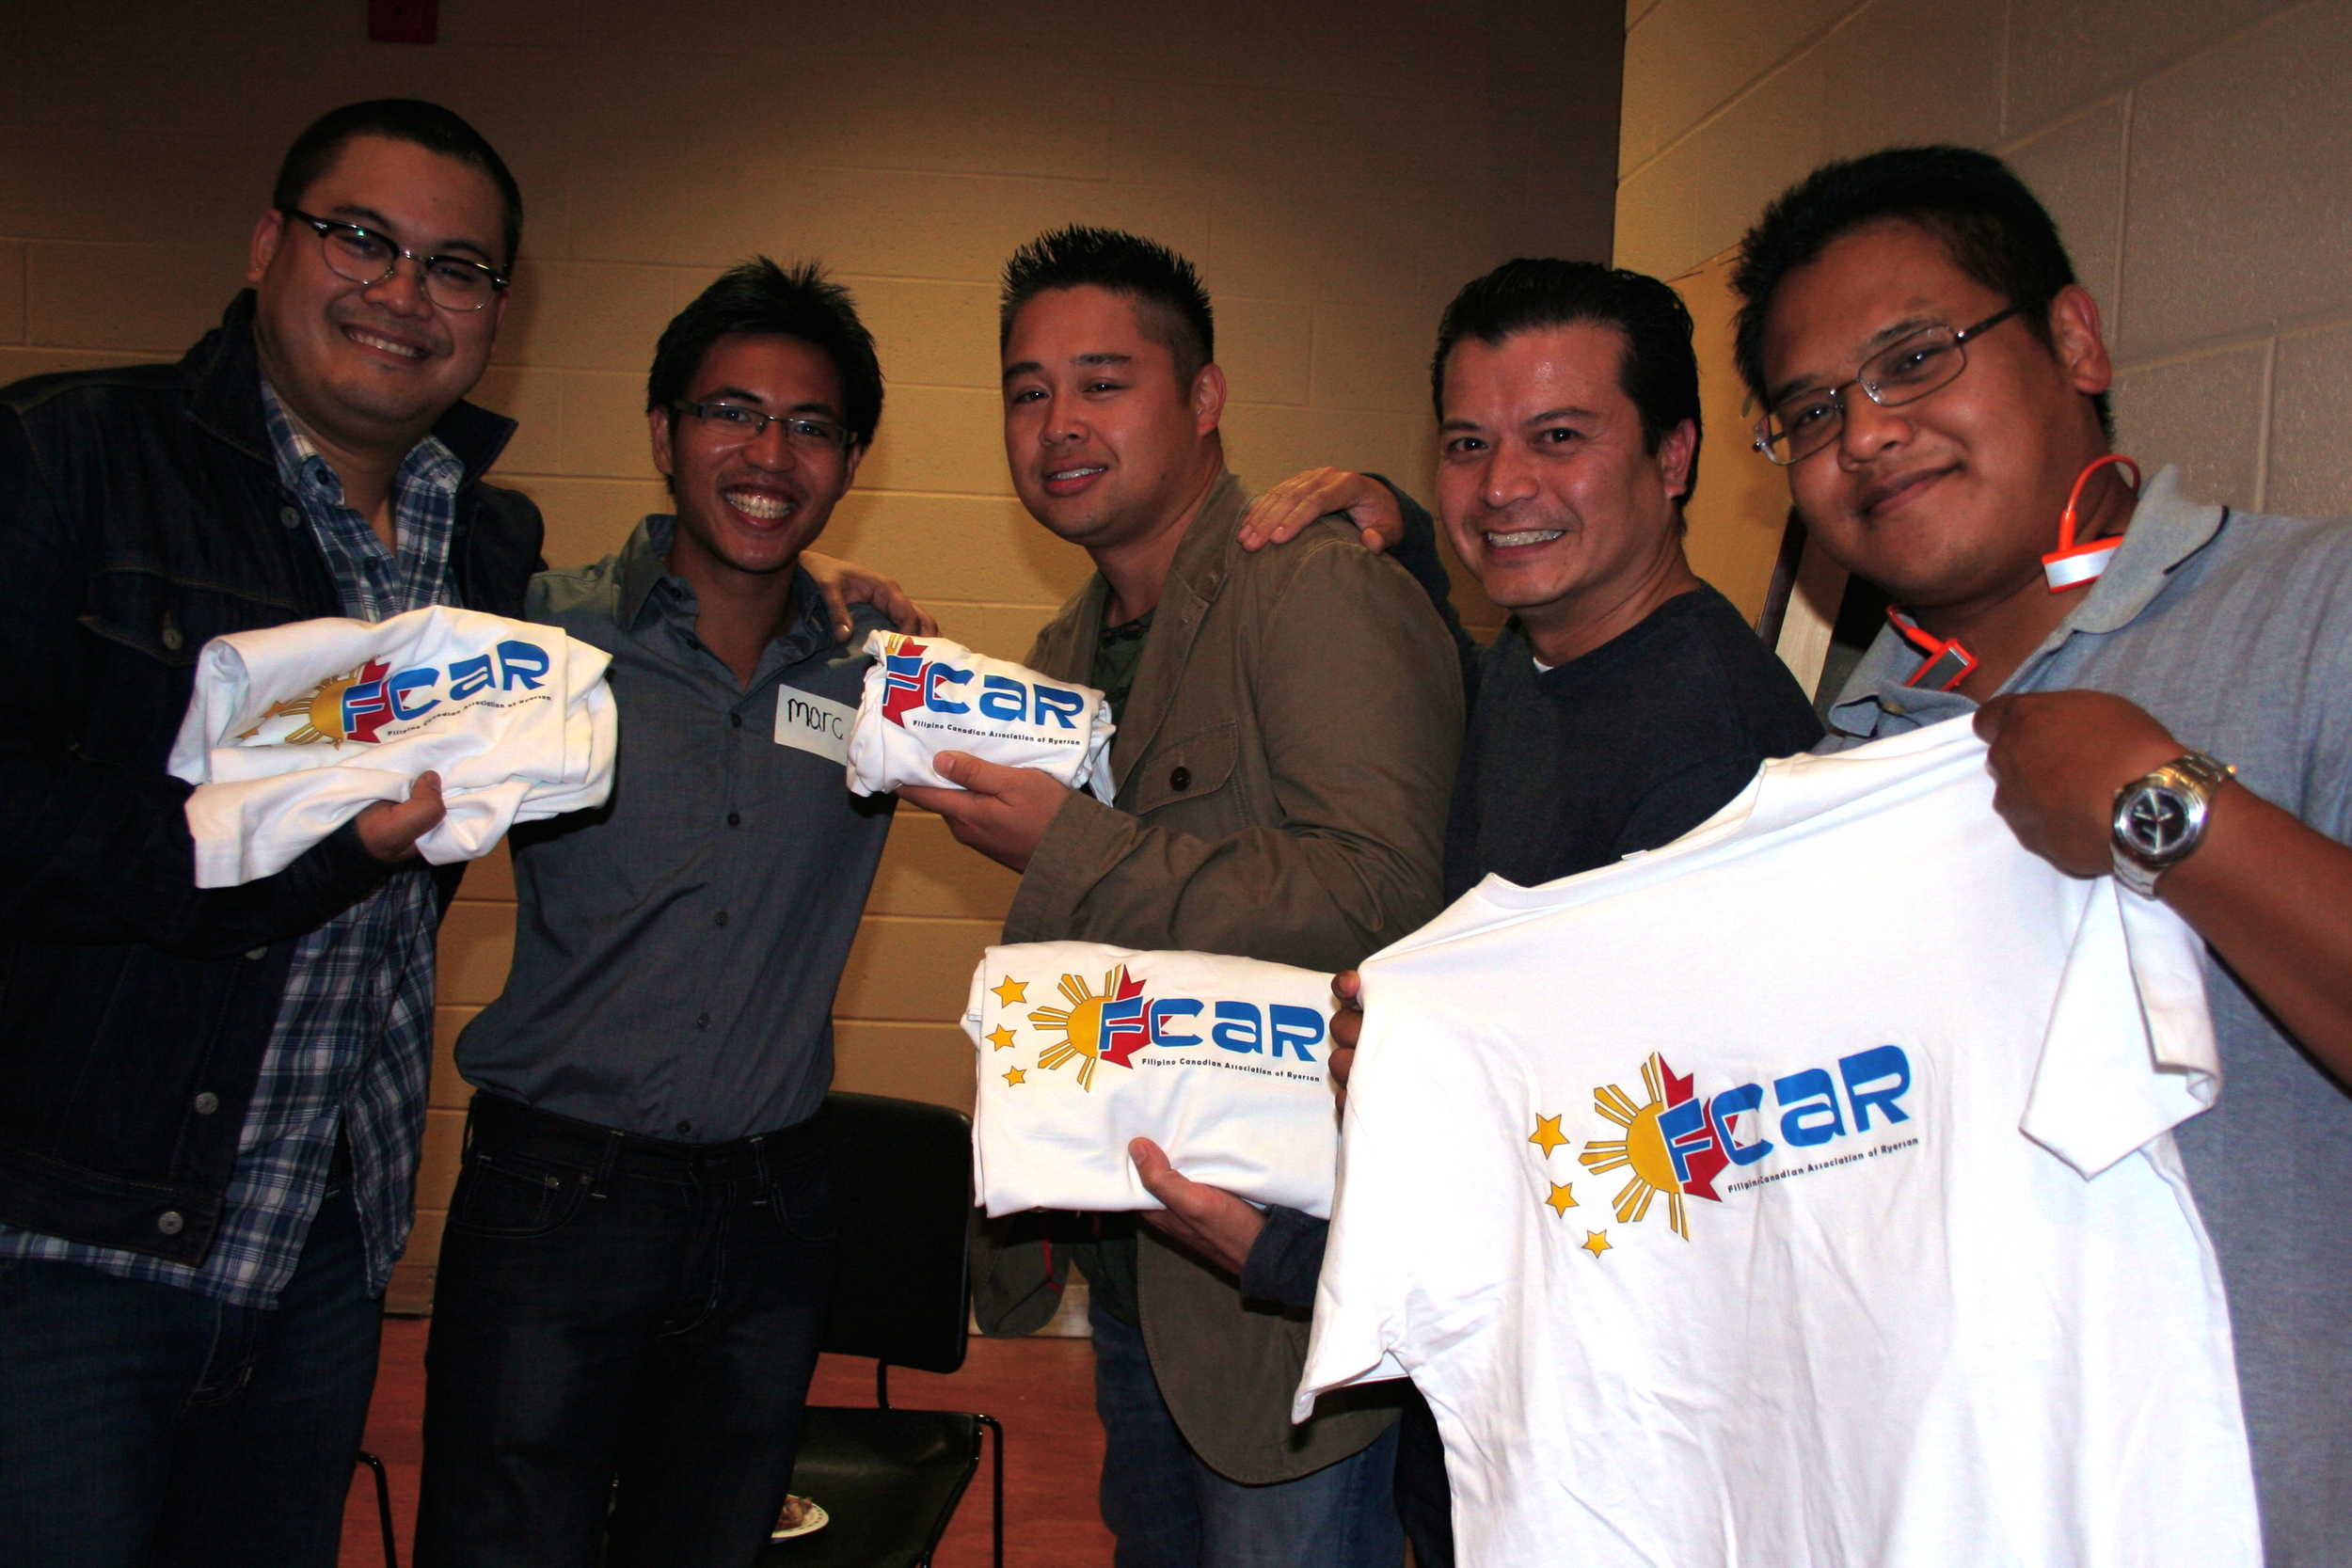 At FCAR Orientation 2009